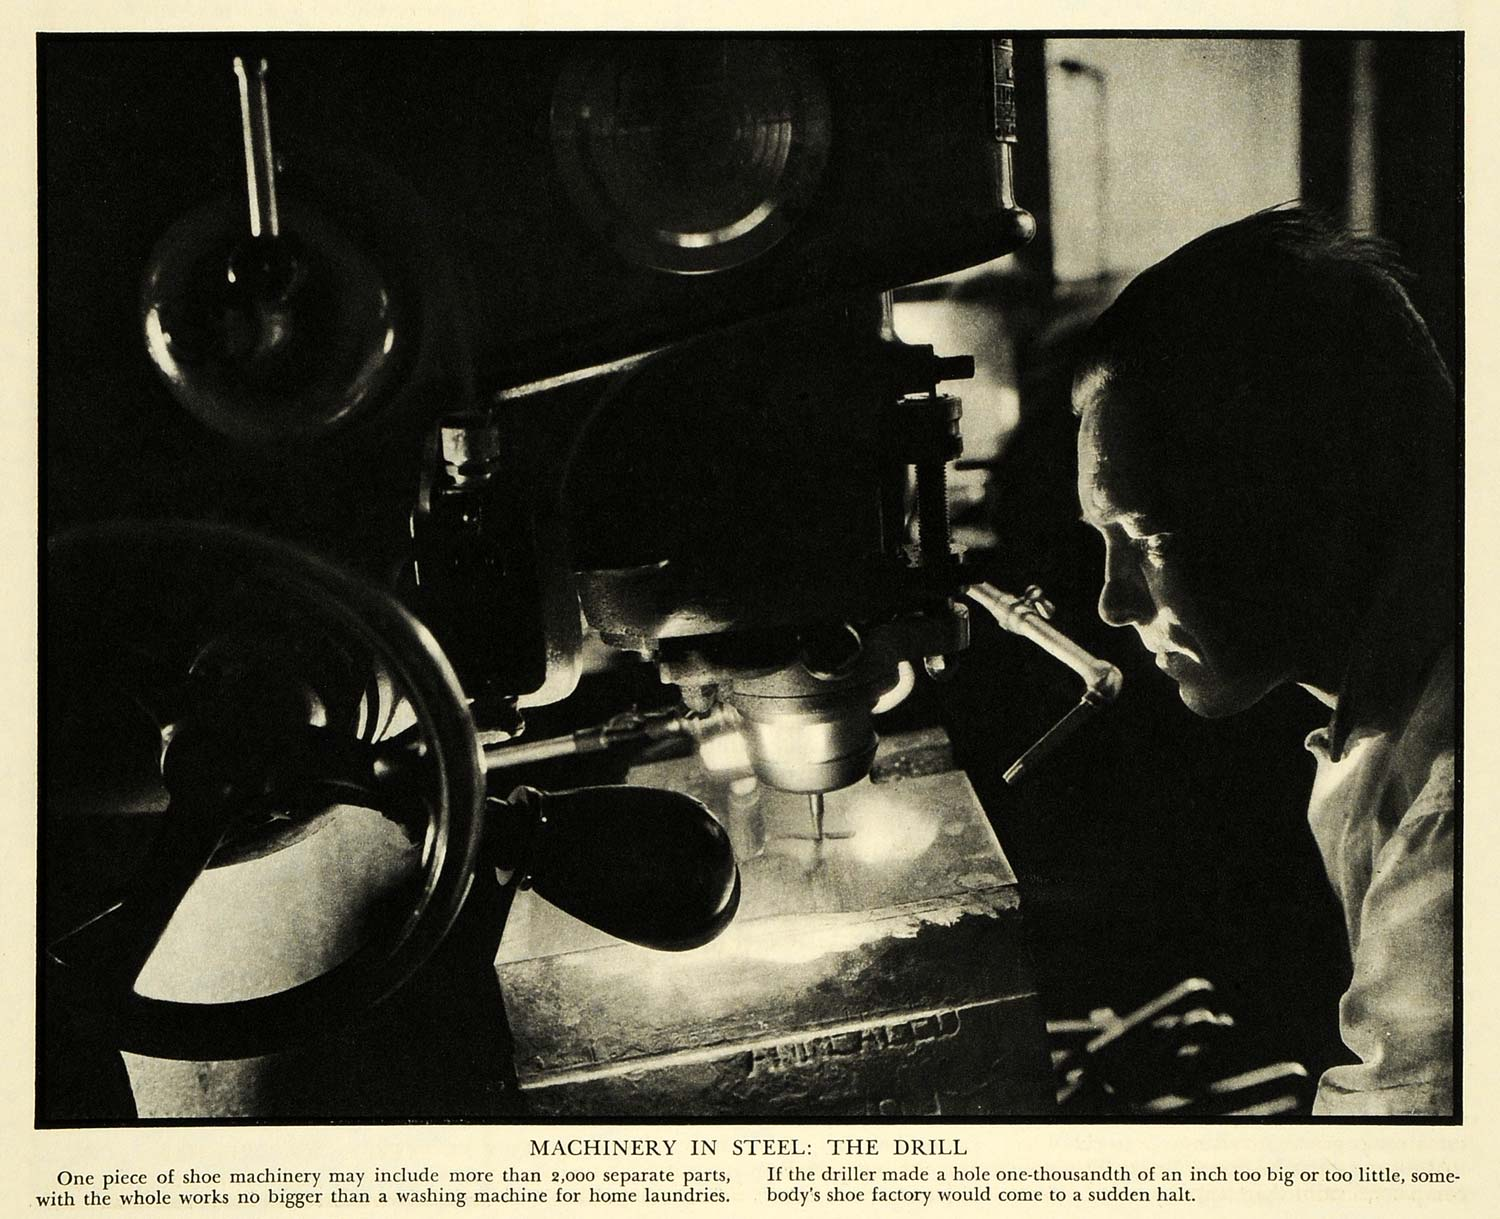 1933 Print Steel Machinery Drill United Shoe Boston Driller Factory Work FZ1